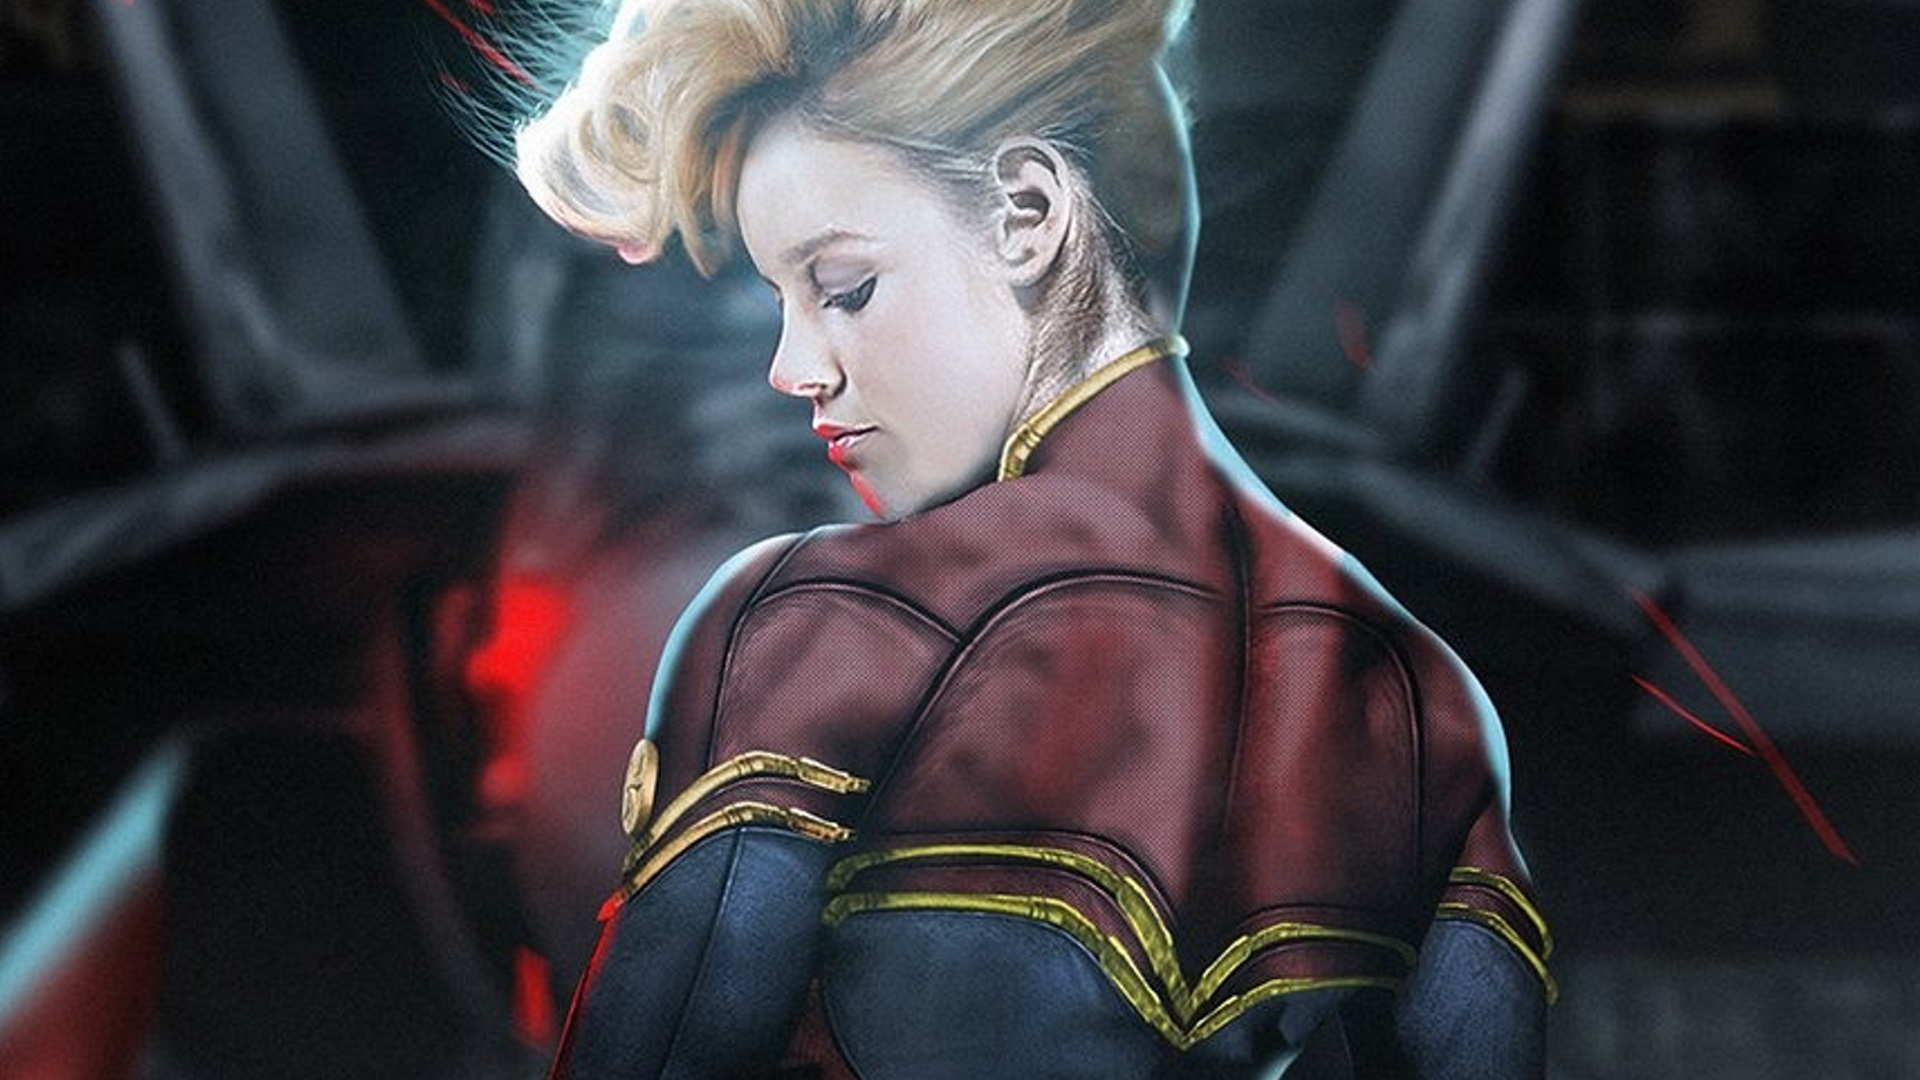 Brie Larson Explains Why She Took On The Role Of Captain Marvel